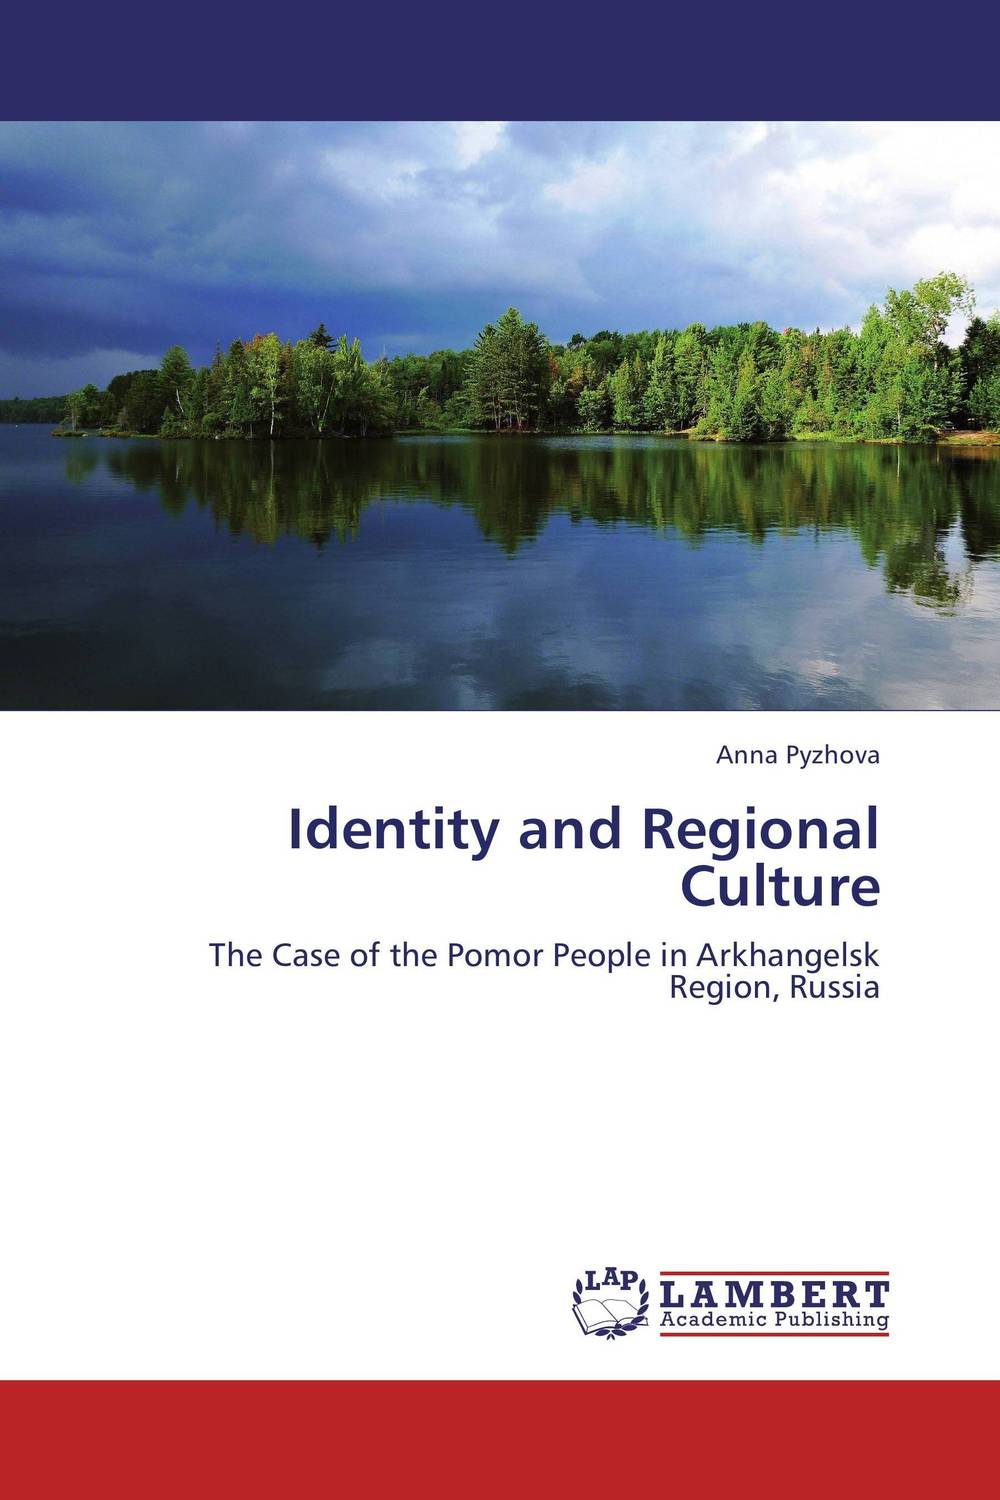 Identity and Regional Culture edited by simon franklin and emma widdis national identity in russian culture an introduction